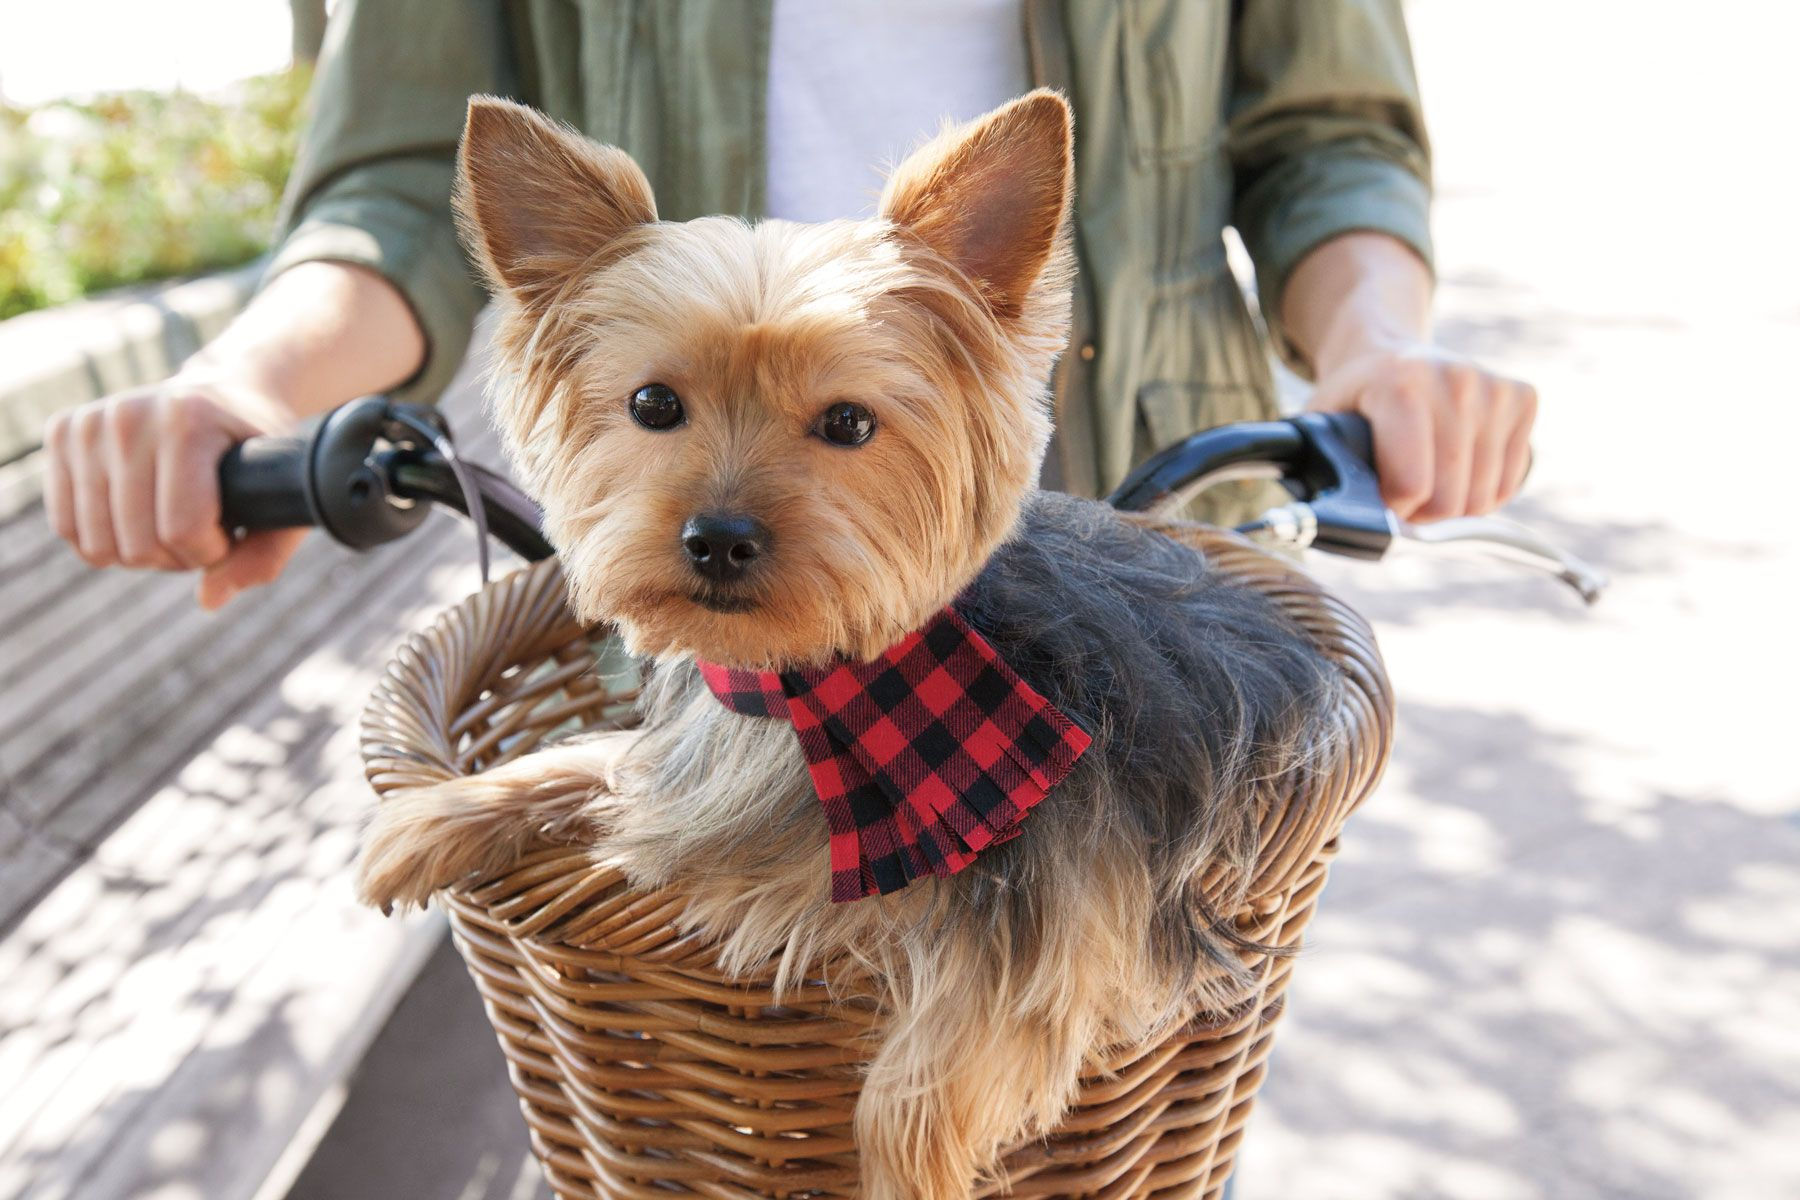 Usher in the fall weather in style with a checkered scarf dog collar